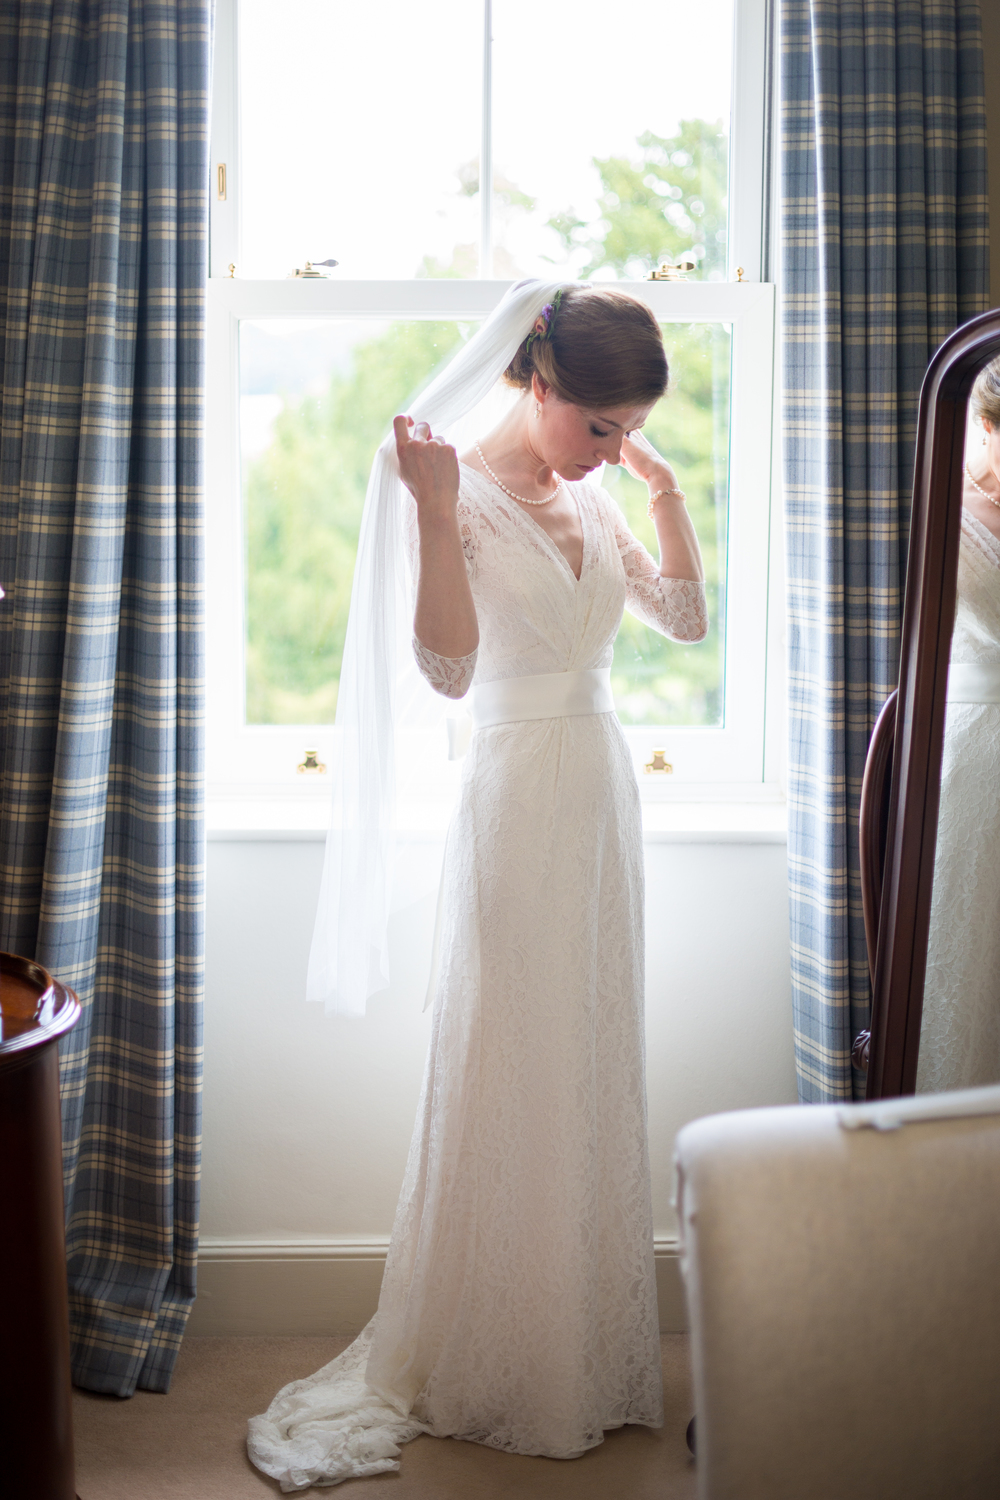 Freya wears the Halfpenny London Josephine wedding dress with a broad sash and fine tulle veil